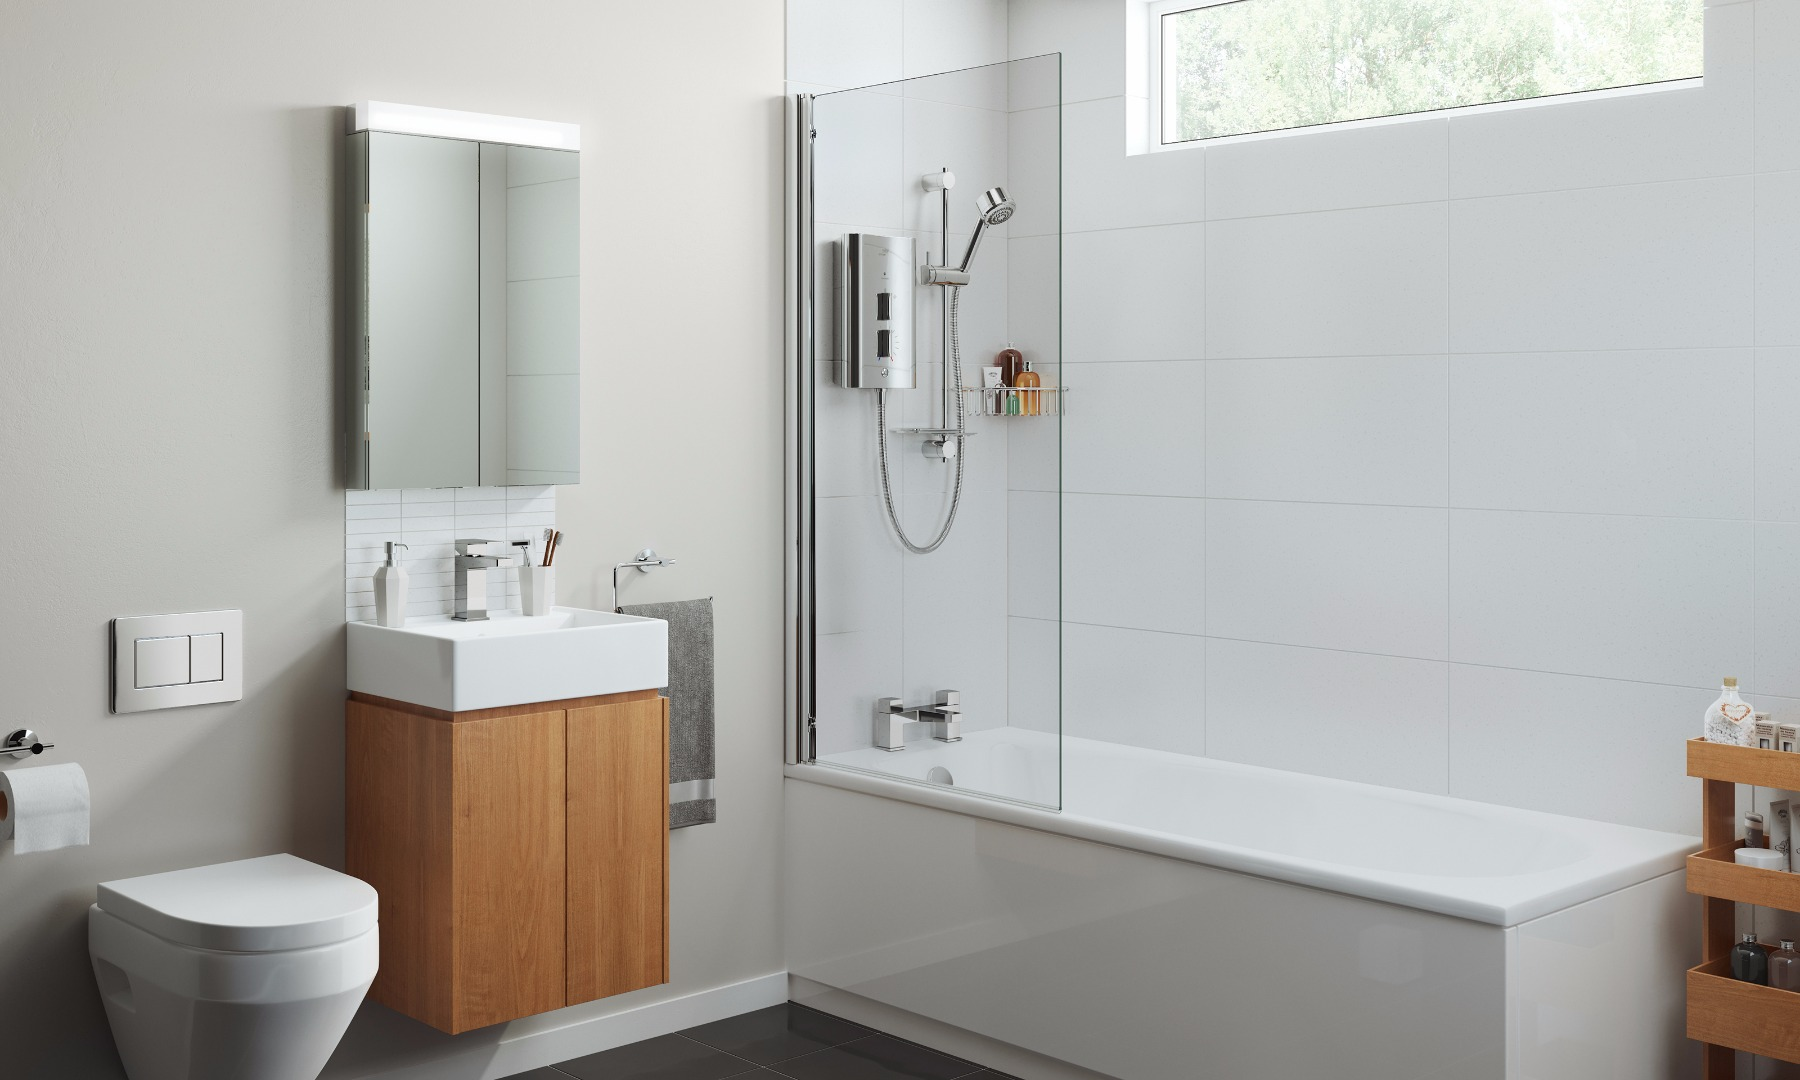 White bathrooms' designs & ideas by Mira Showers on Small Bathroom Ideas Uk id=99867